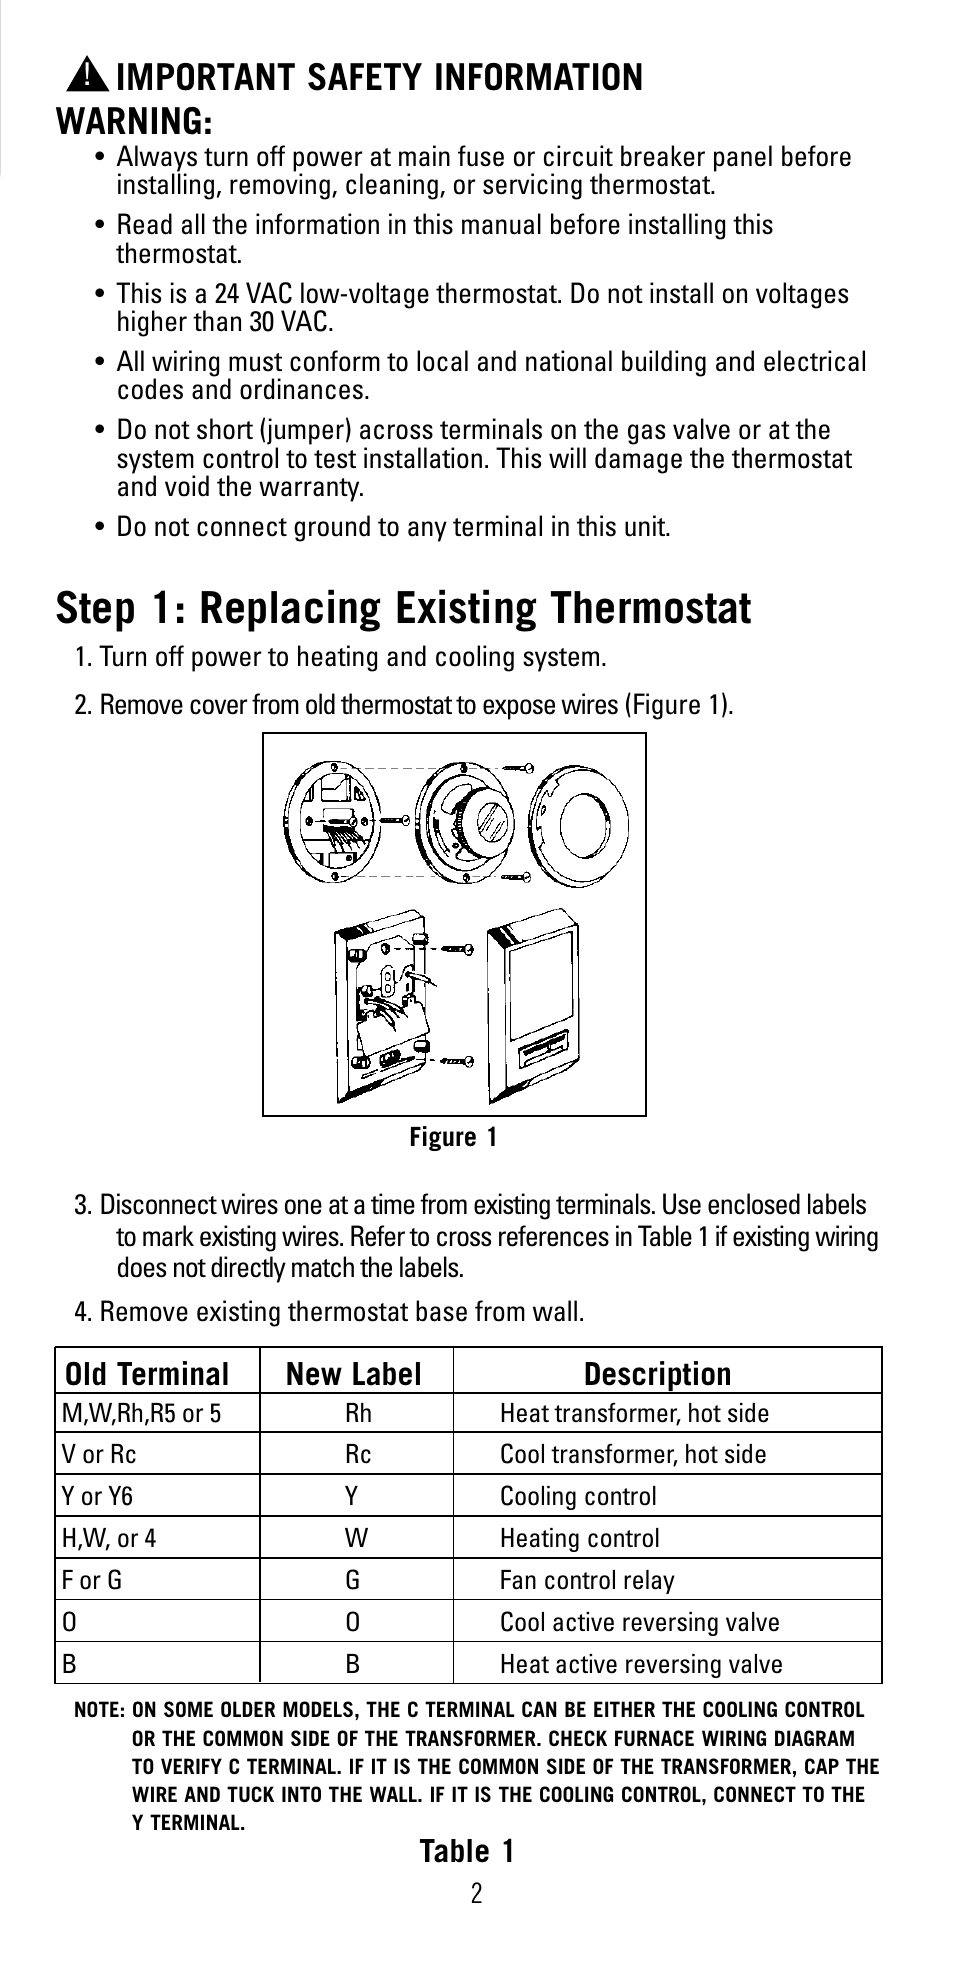 Step 1  Replacing Existing Thermostat  Important Safety